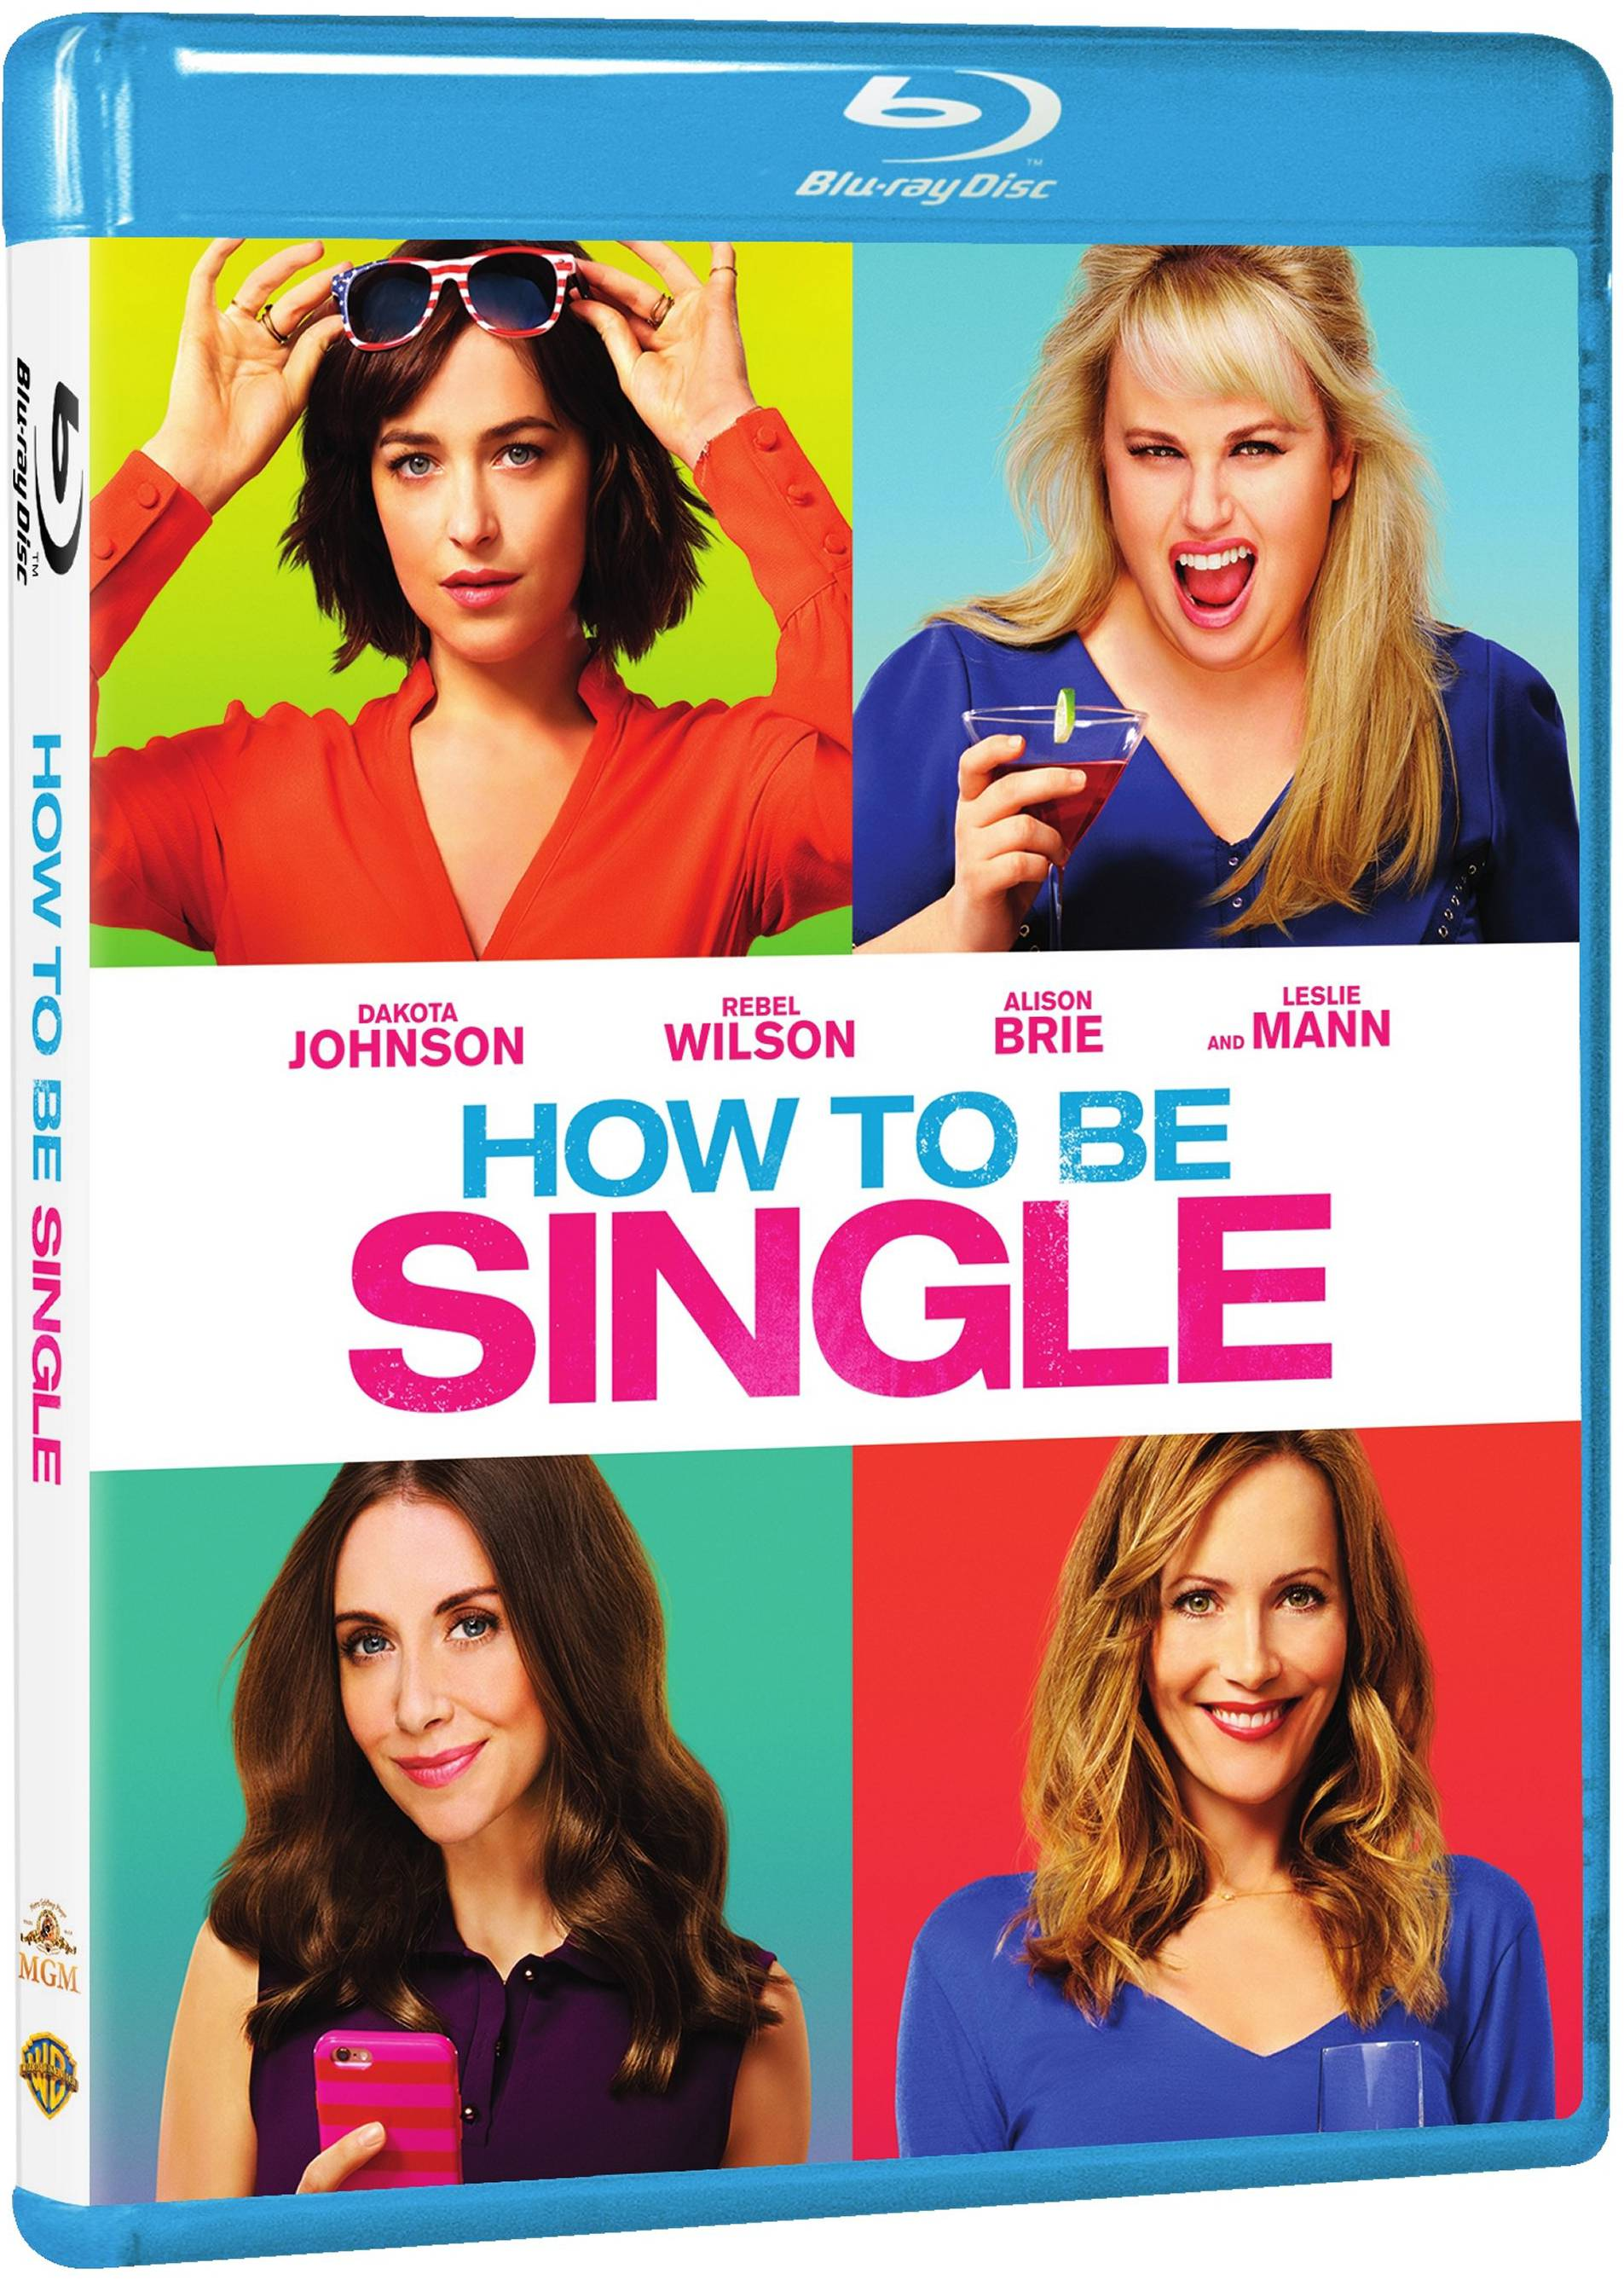 How To Be Single Bluray Review, How To Be Single Flickdirect